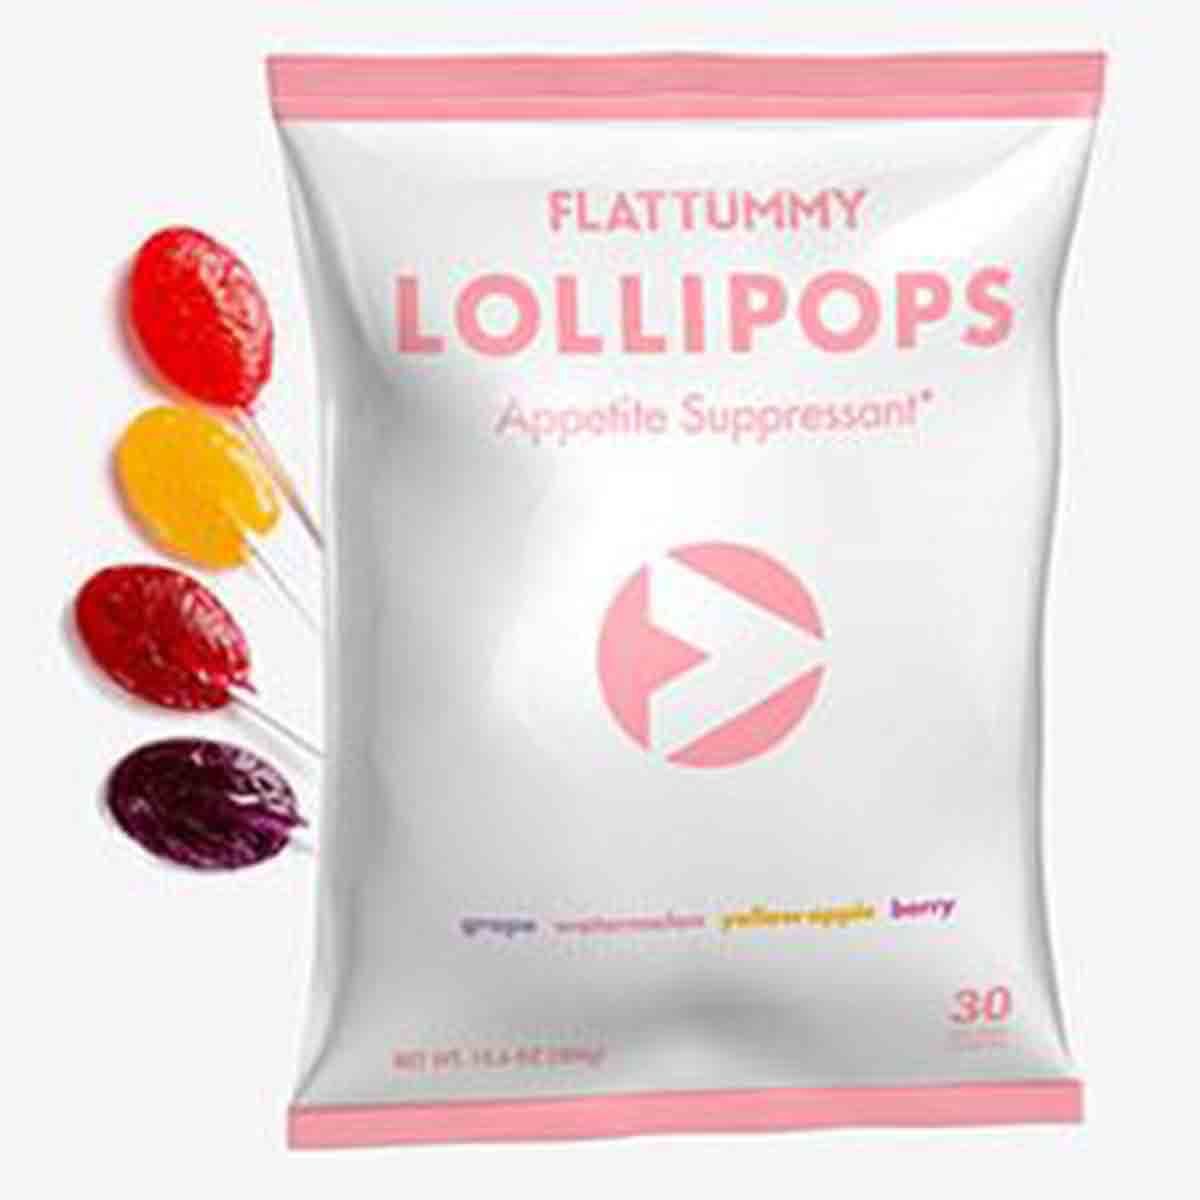 Flat Tummy Lollipops